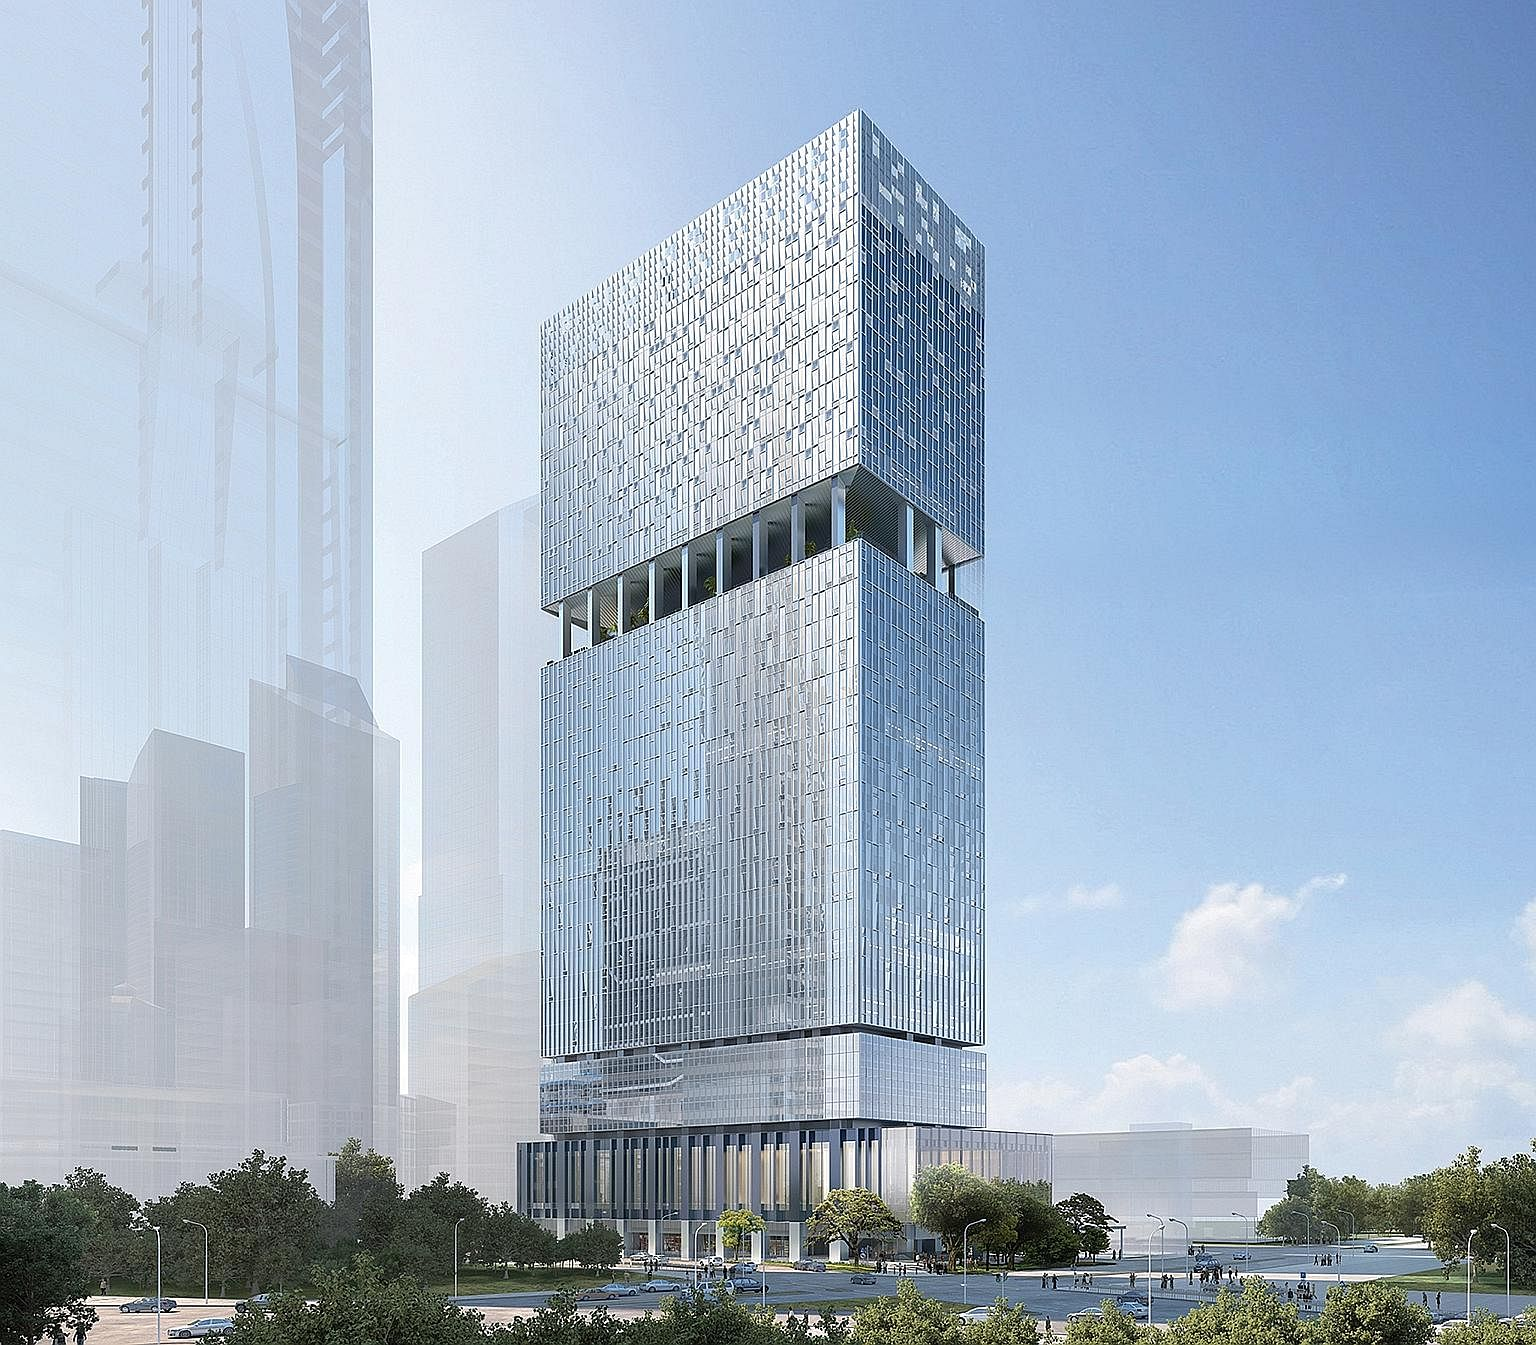 Mitsui is jointly redeveloping the former CPF Building at 79, Robinson Road, with Ascendas- Singbridge and real estate developer Tokyo Tatemono. The groundbreaking ceremony for the $1 billion project was held yesterday.